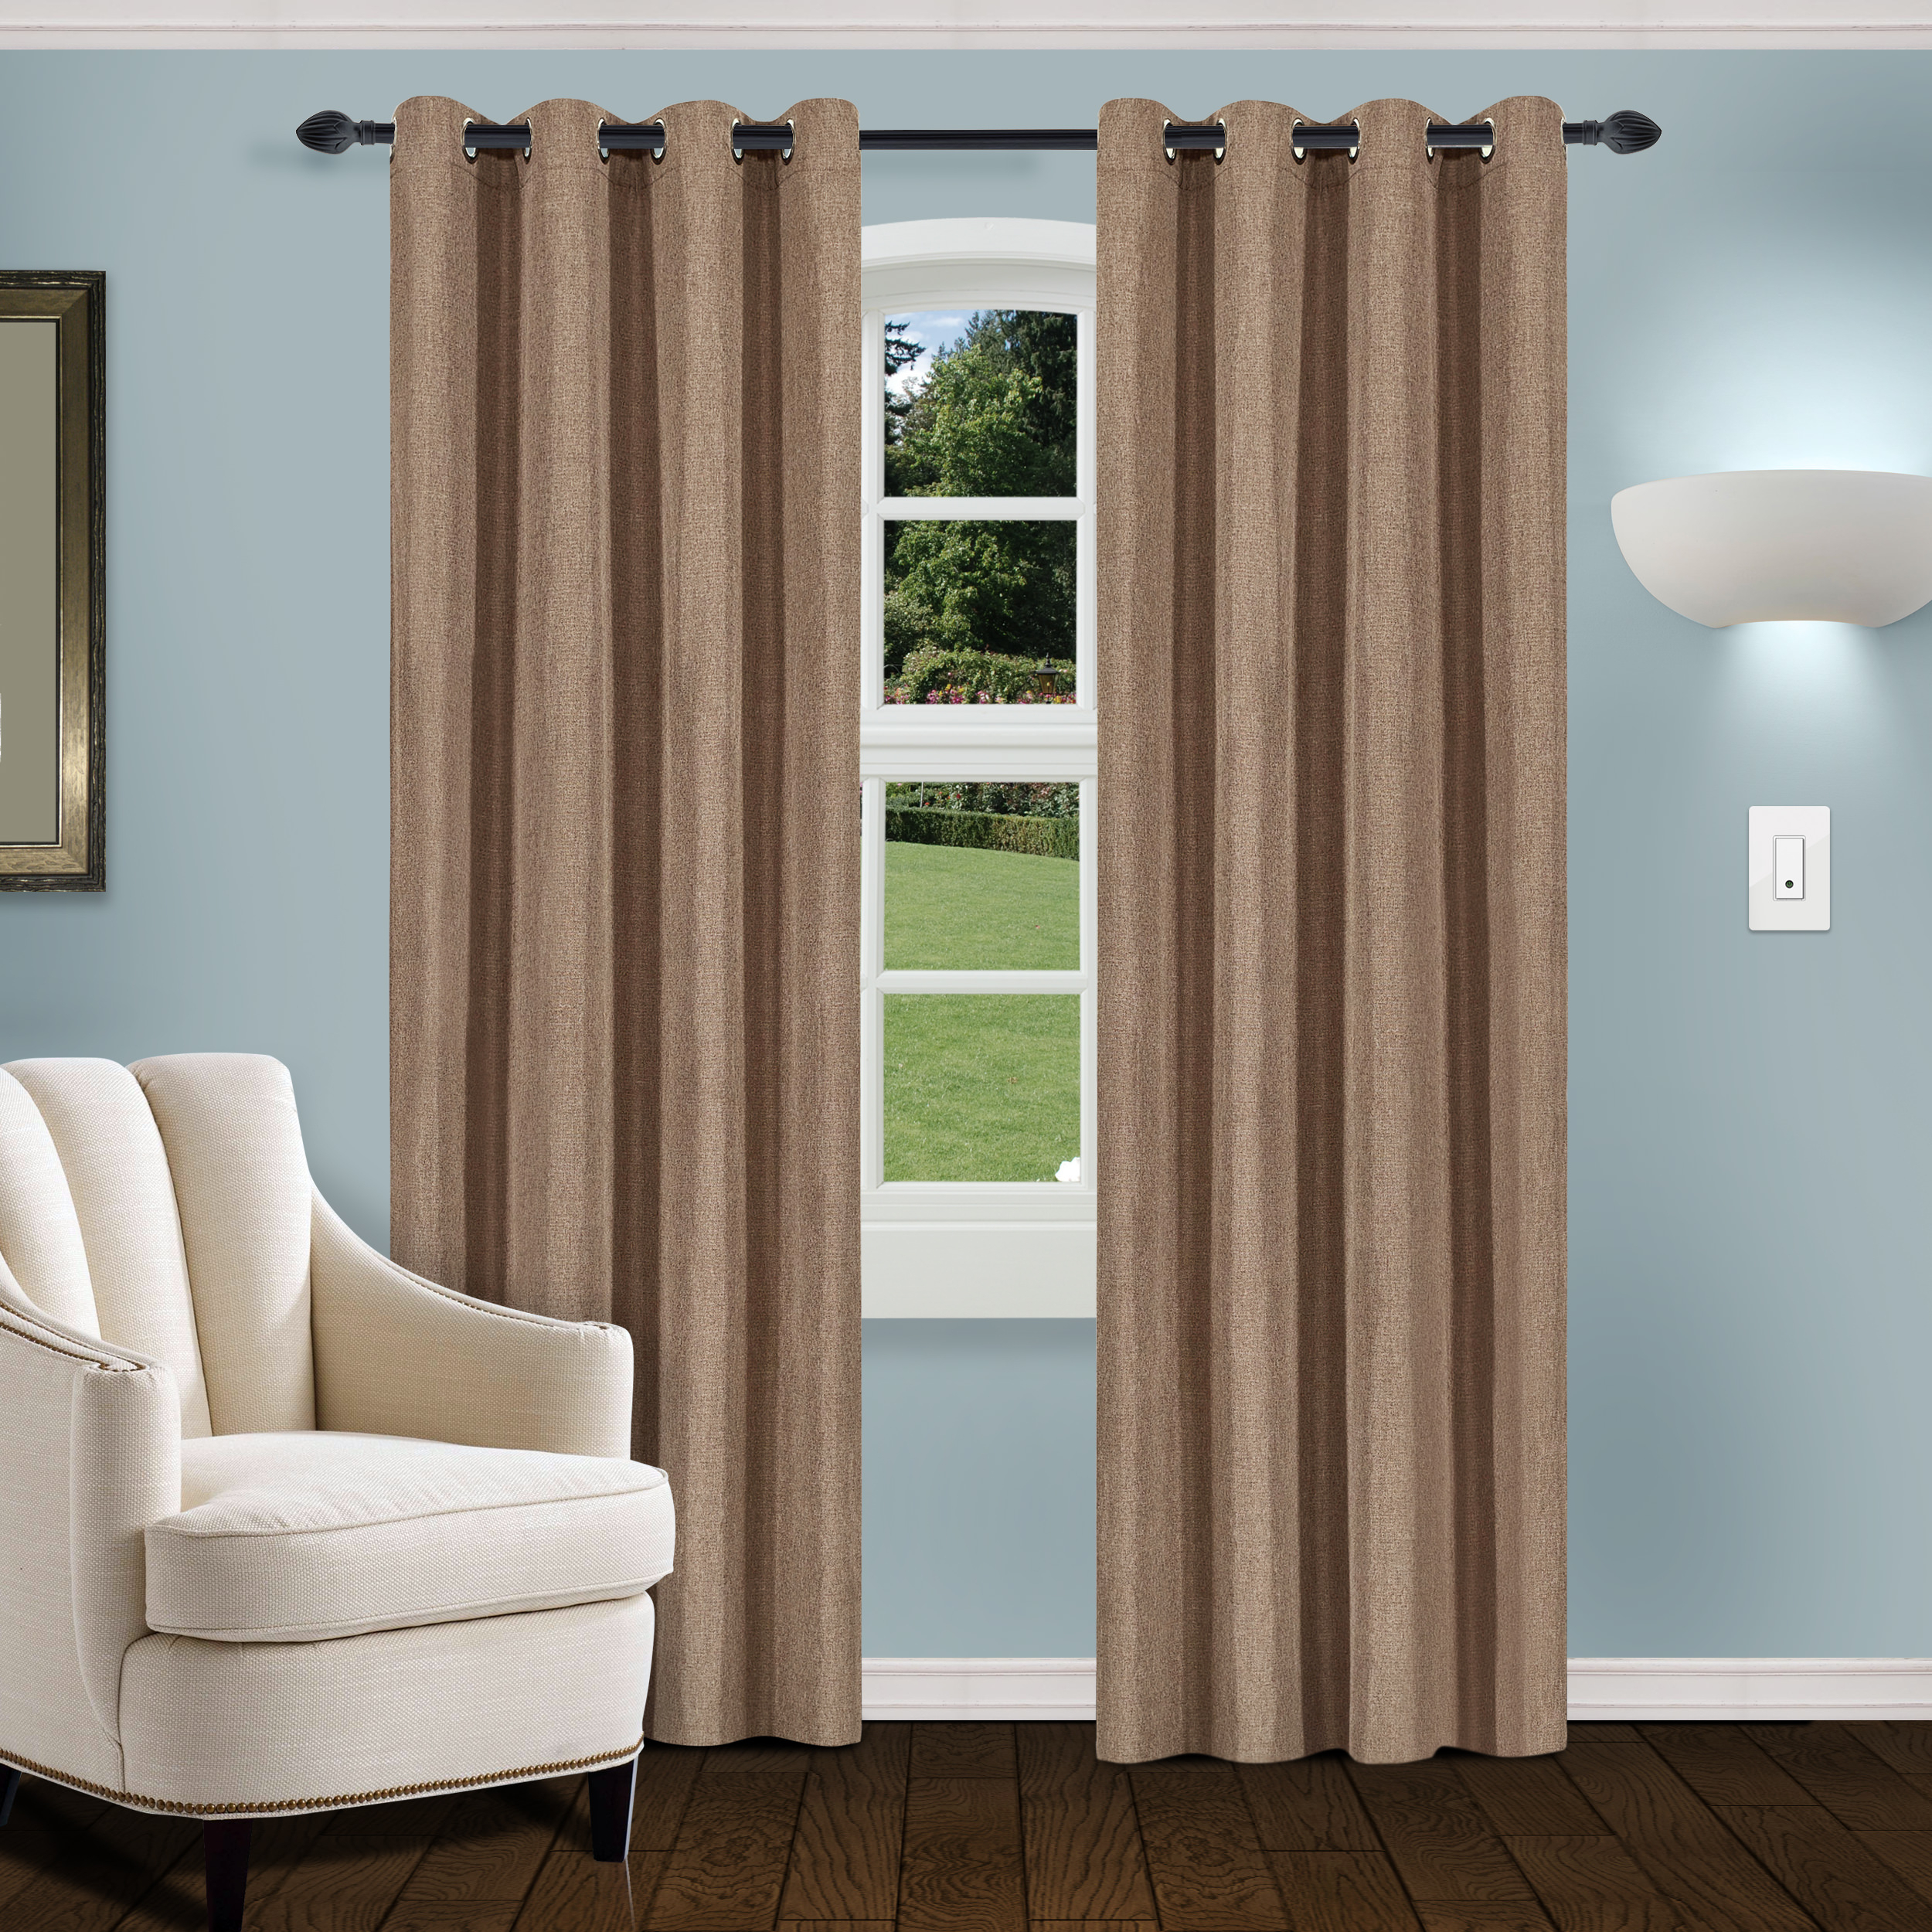 Superior Linen Textured Blackout Curtain Set Of 2 With Grommet Top Header With Regard To Superior Solid Insulated Thermal Blackout Grommet Curtain Panel Pairs (View 13 of 30)